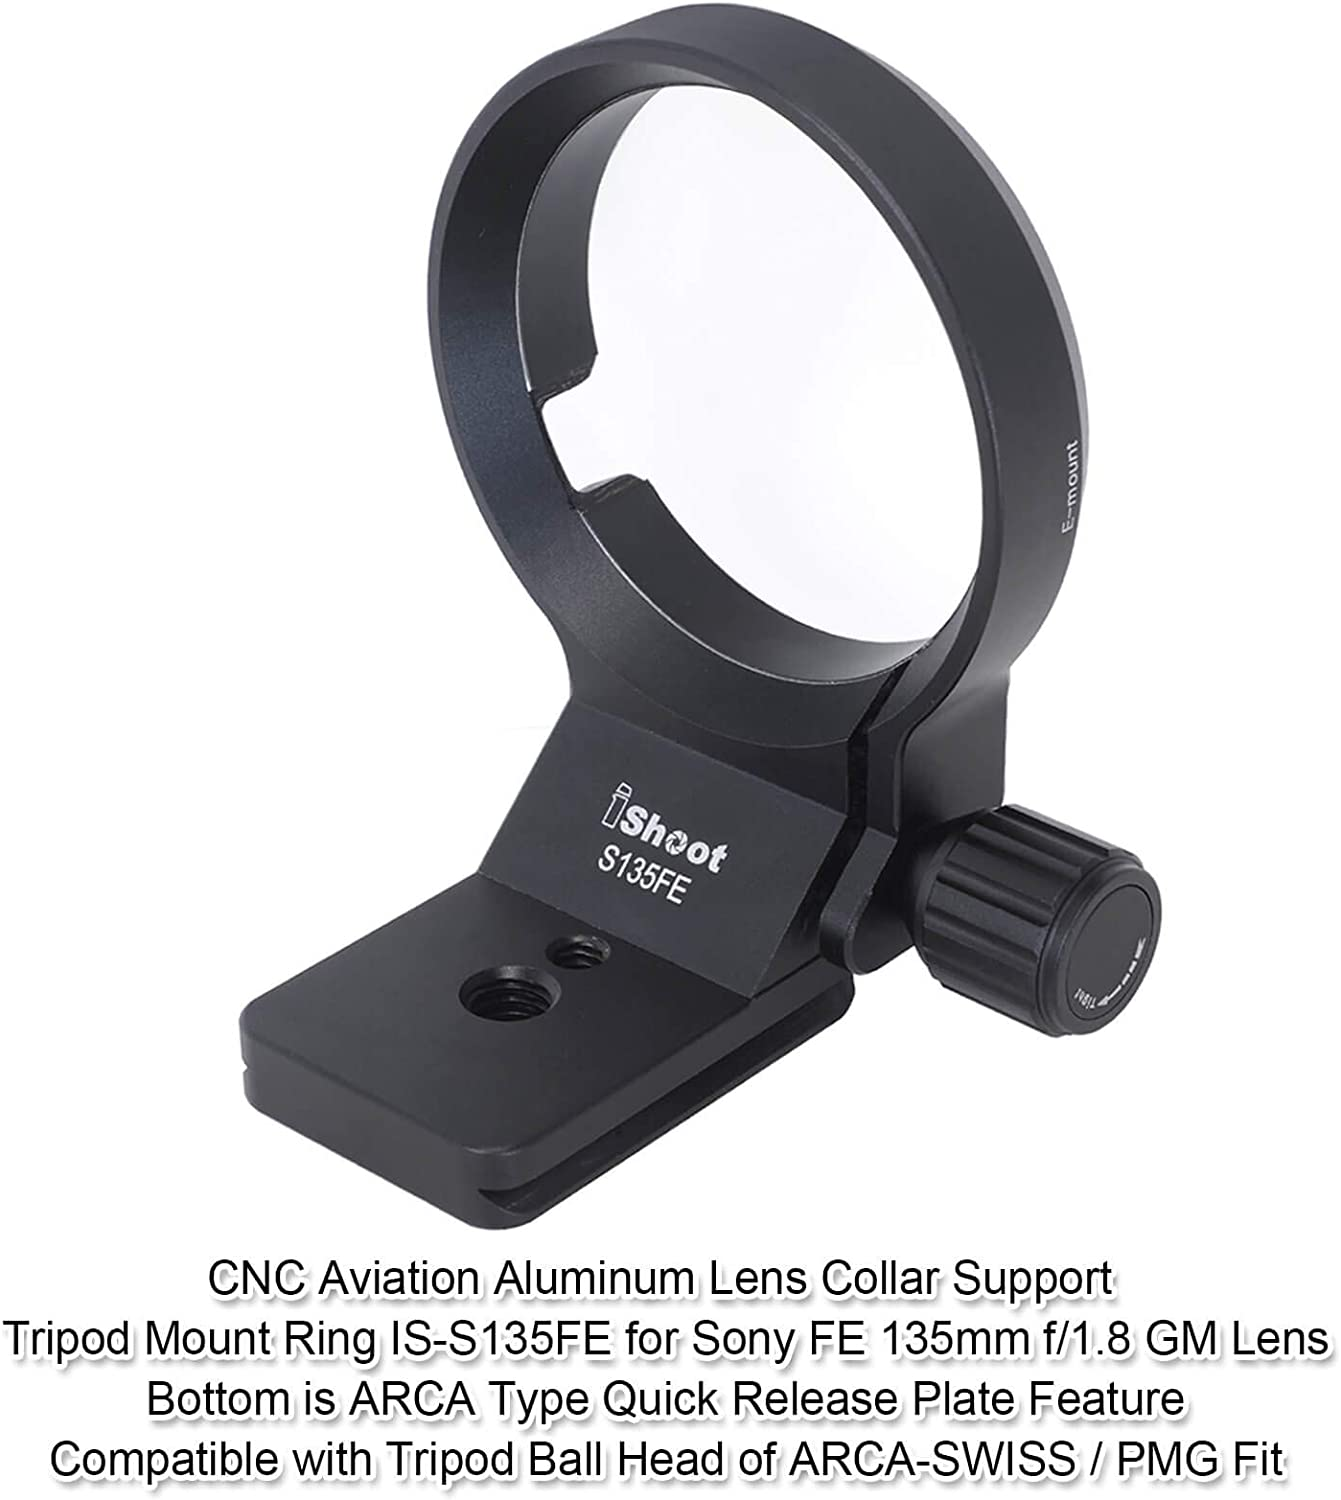 Compatible with Tripod Ball Head of Arca-Swiss PMG SUNWAYFOTO Wimberley iShoot Camera Lens Collar Support for Sony FE 135mm f//1.8 GM Lens Tripod Mount Ring Built-in Quick Release Plate